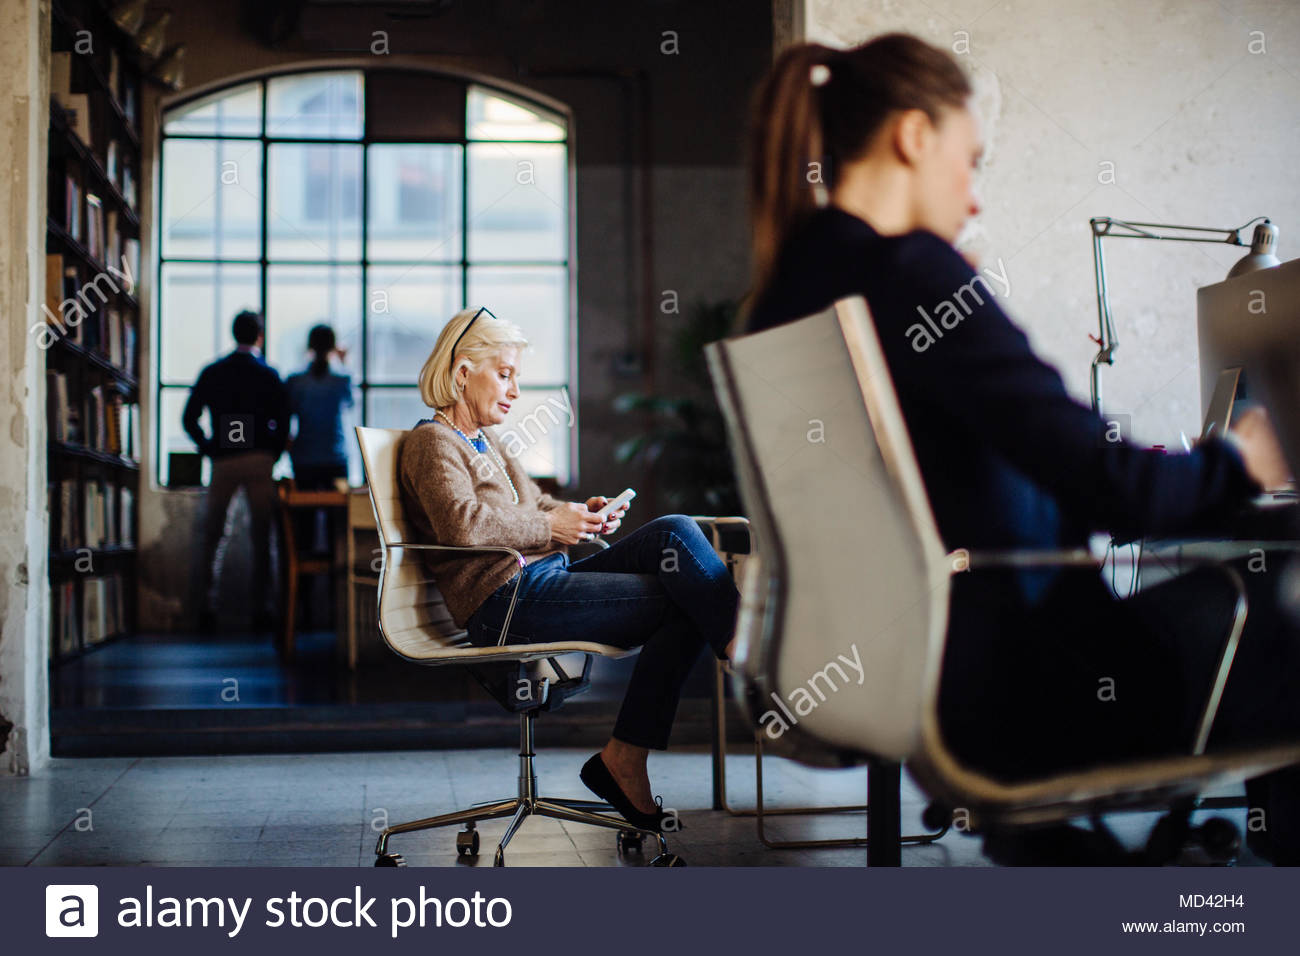 Businesspeople in office, two women sitting at desk working, businessman and woman looking out of window in background - Stock Image